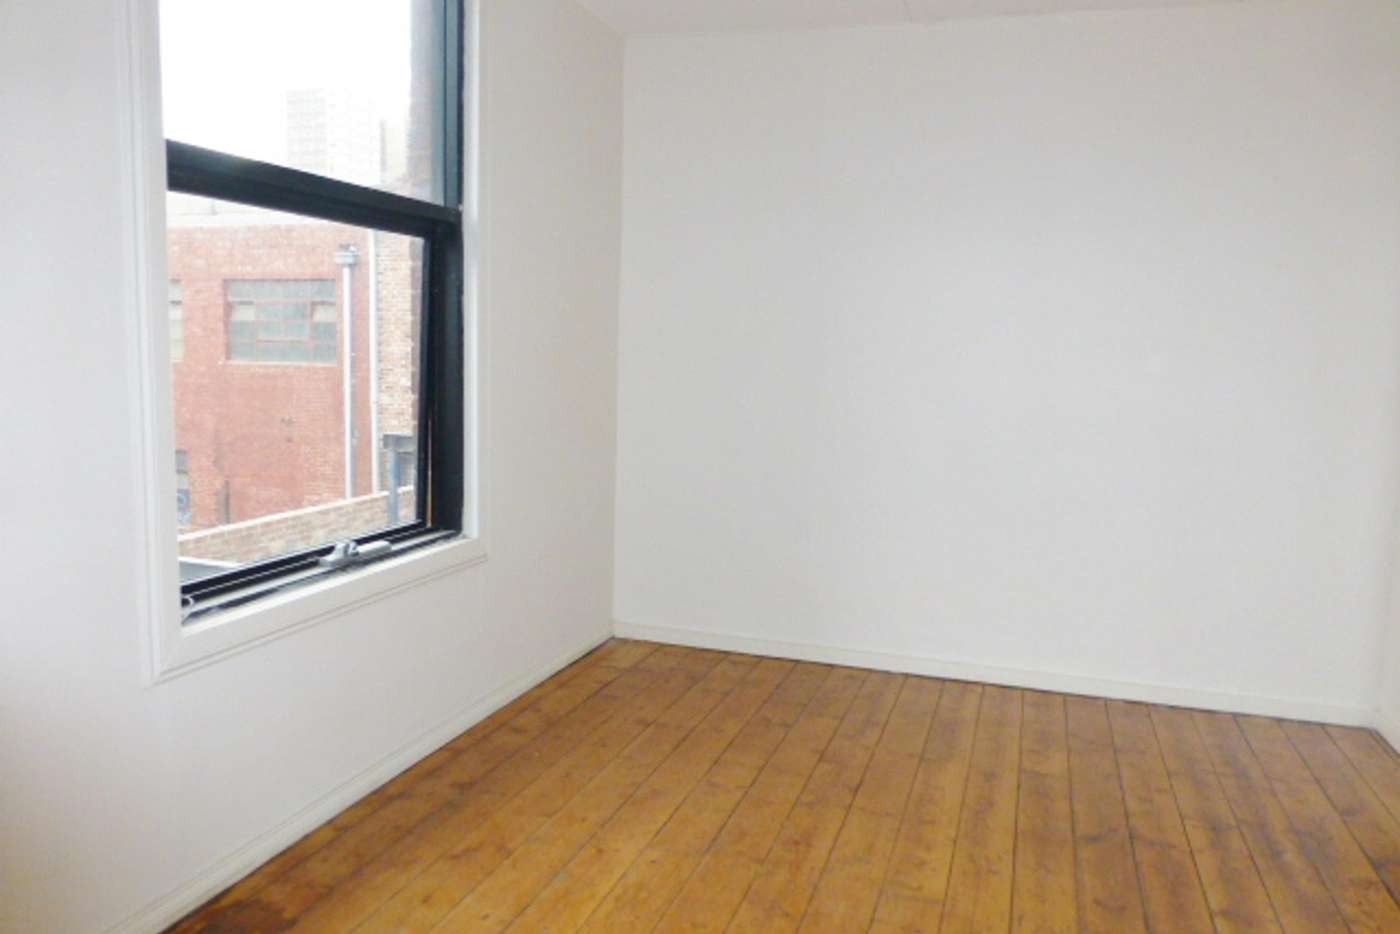 Seventh view of Homely apartment listing, 1/98 Victoria Street, Richmond VIC 3121